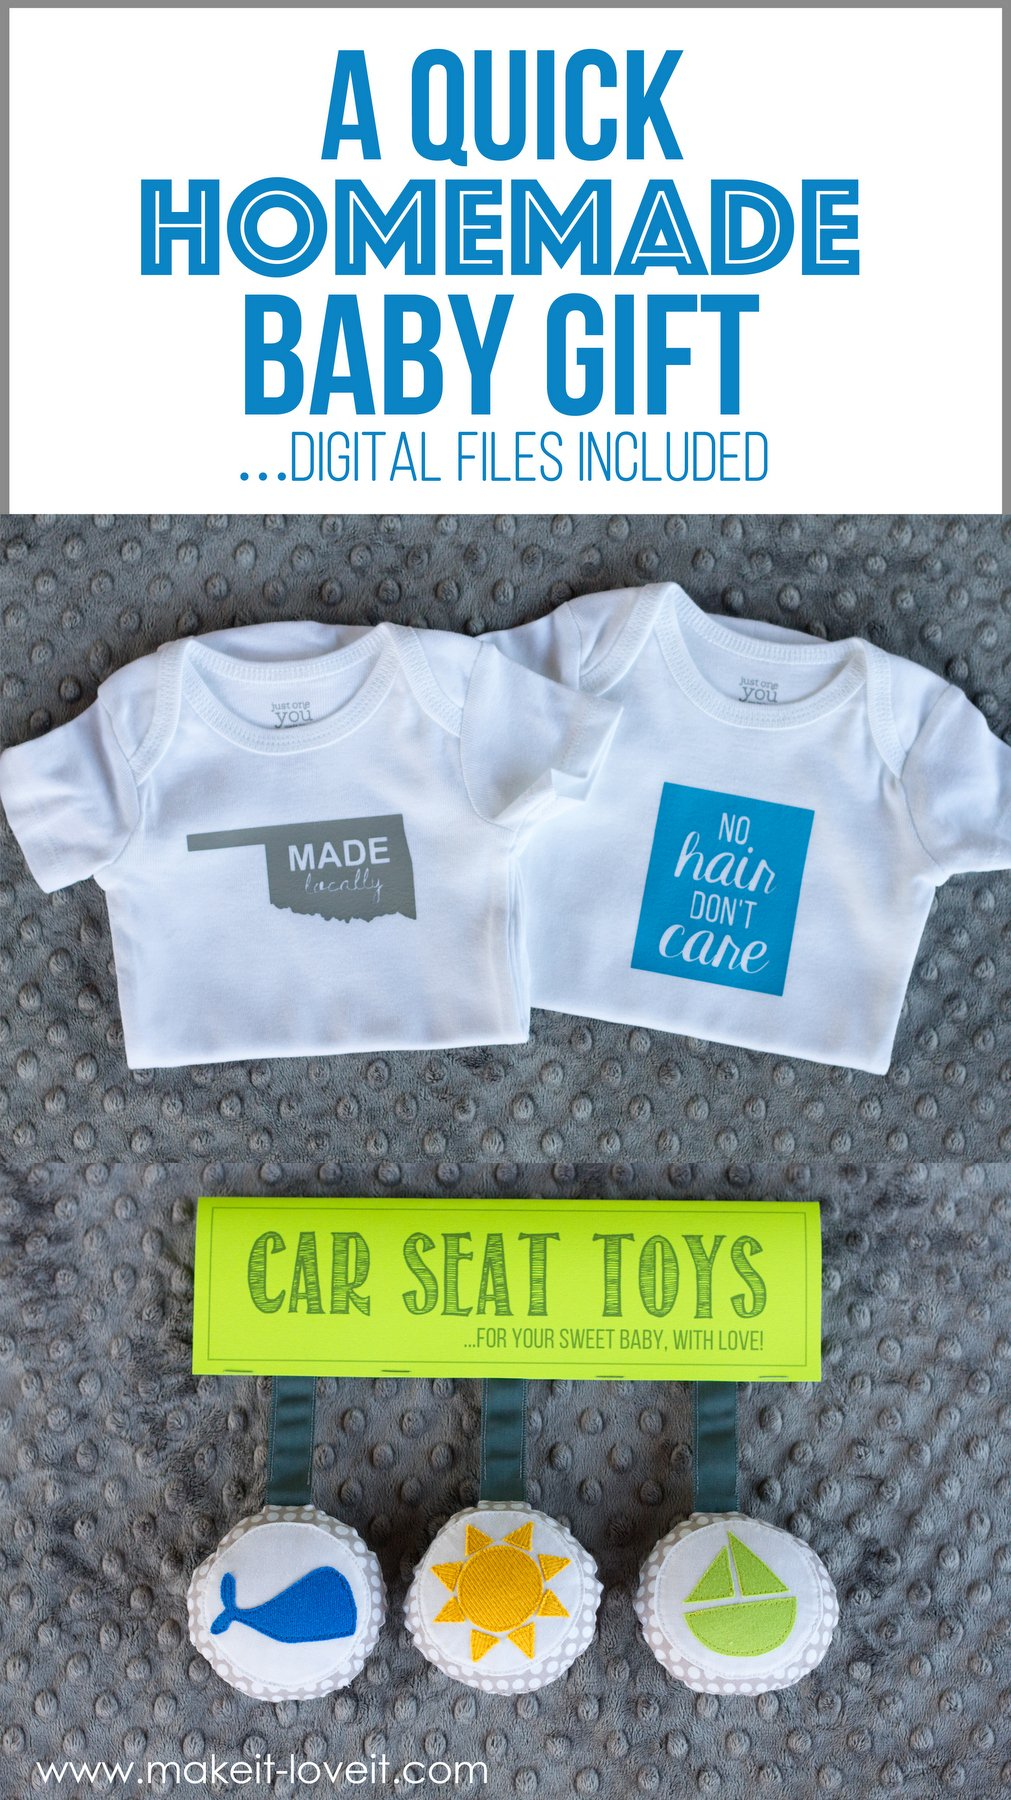 A quick homemade baby gift (…digital files included!)